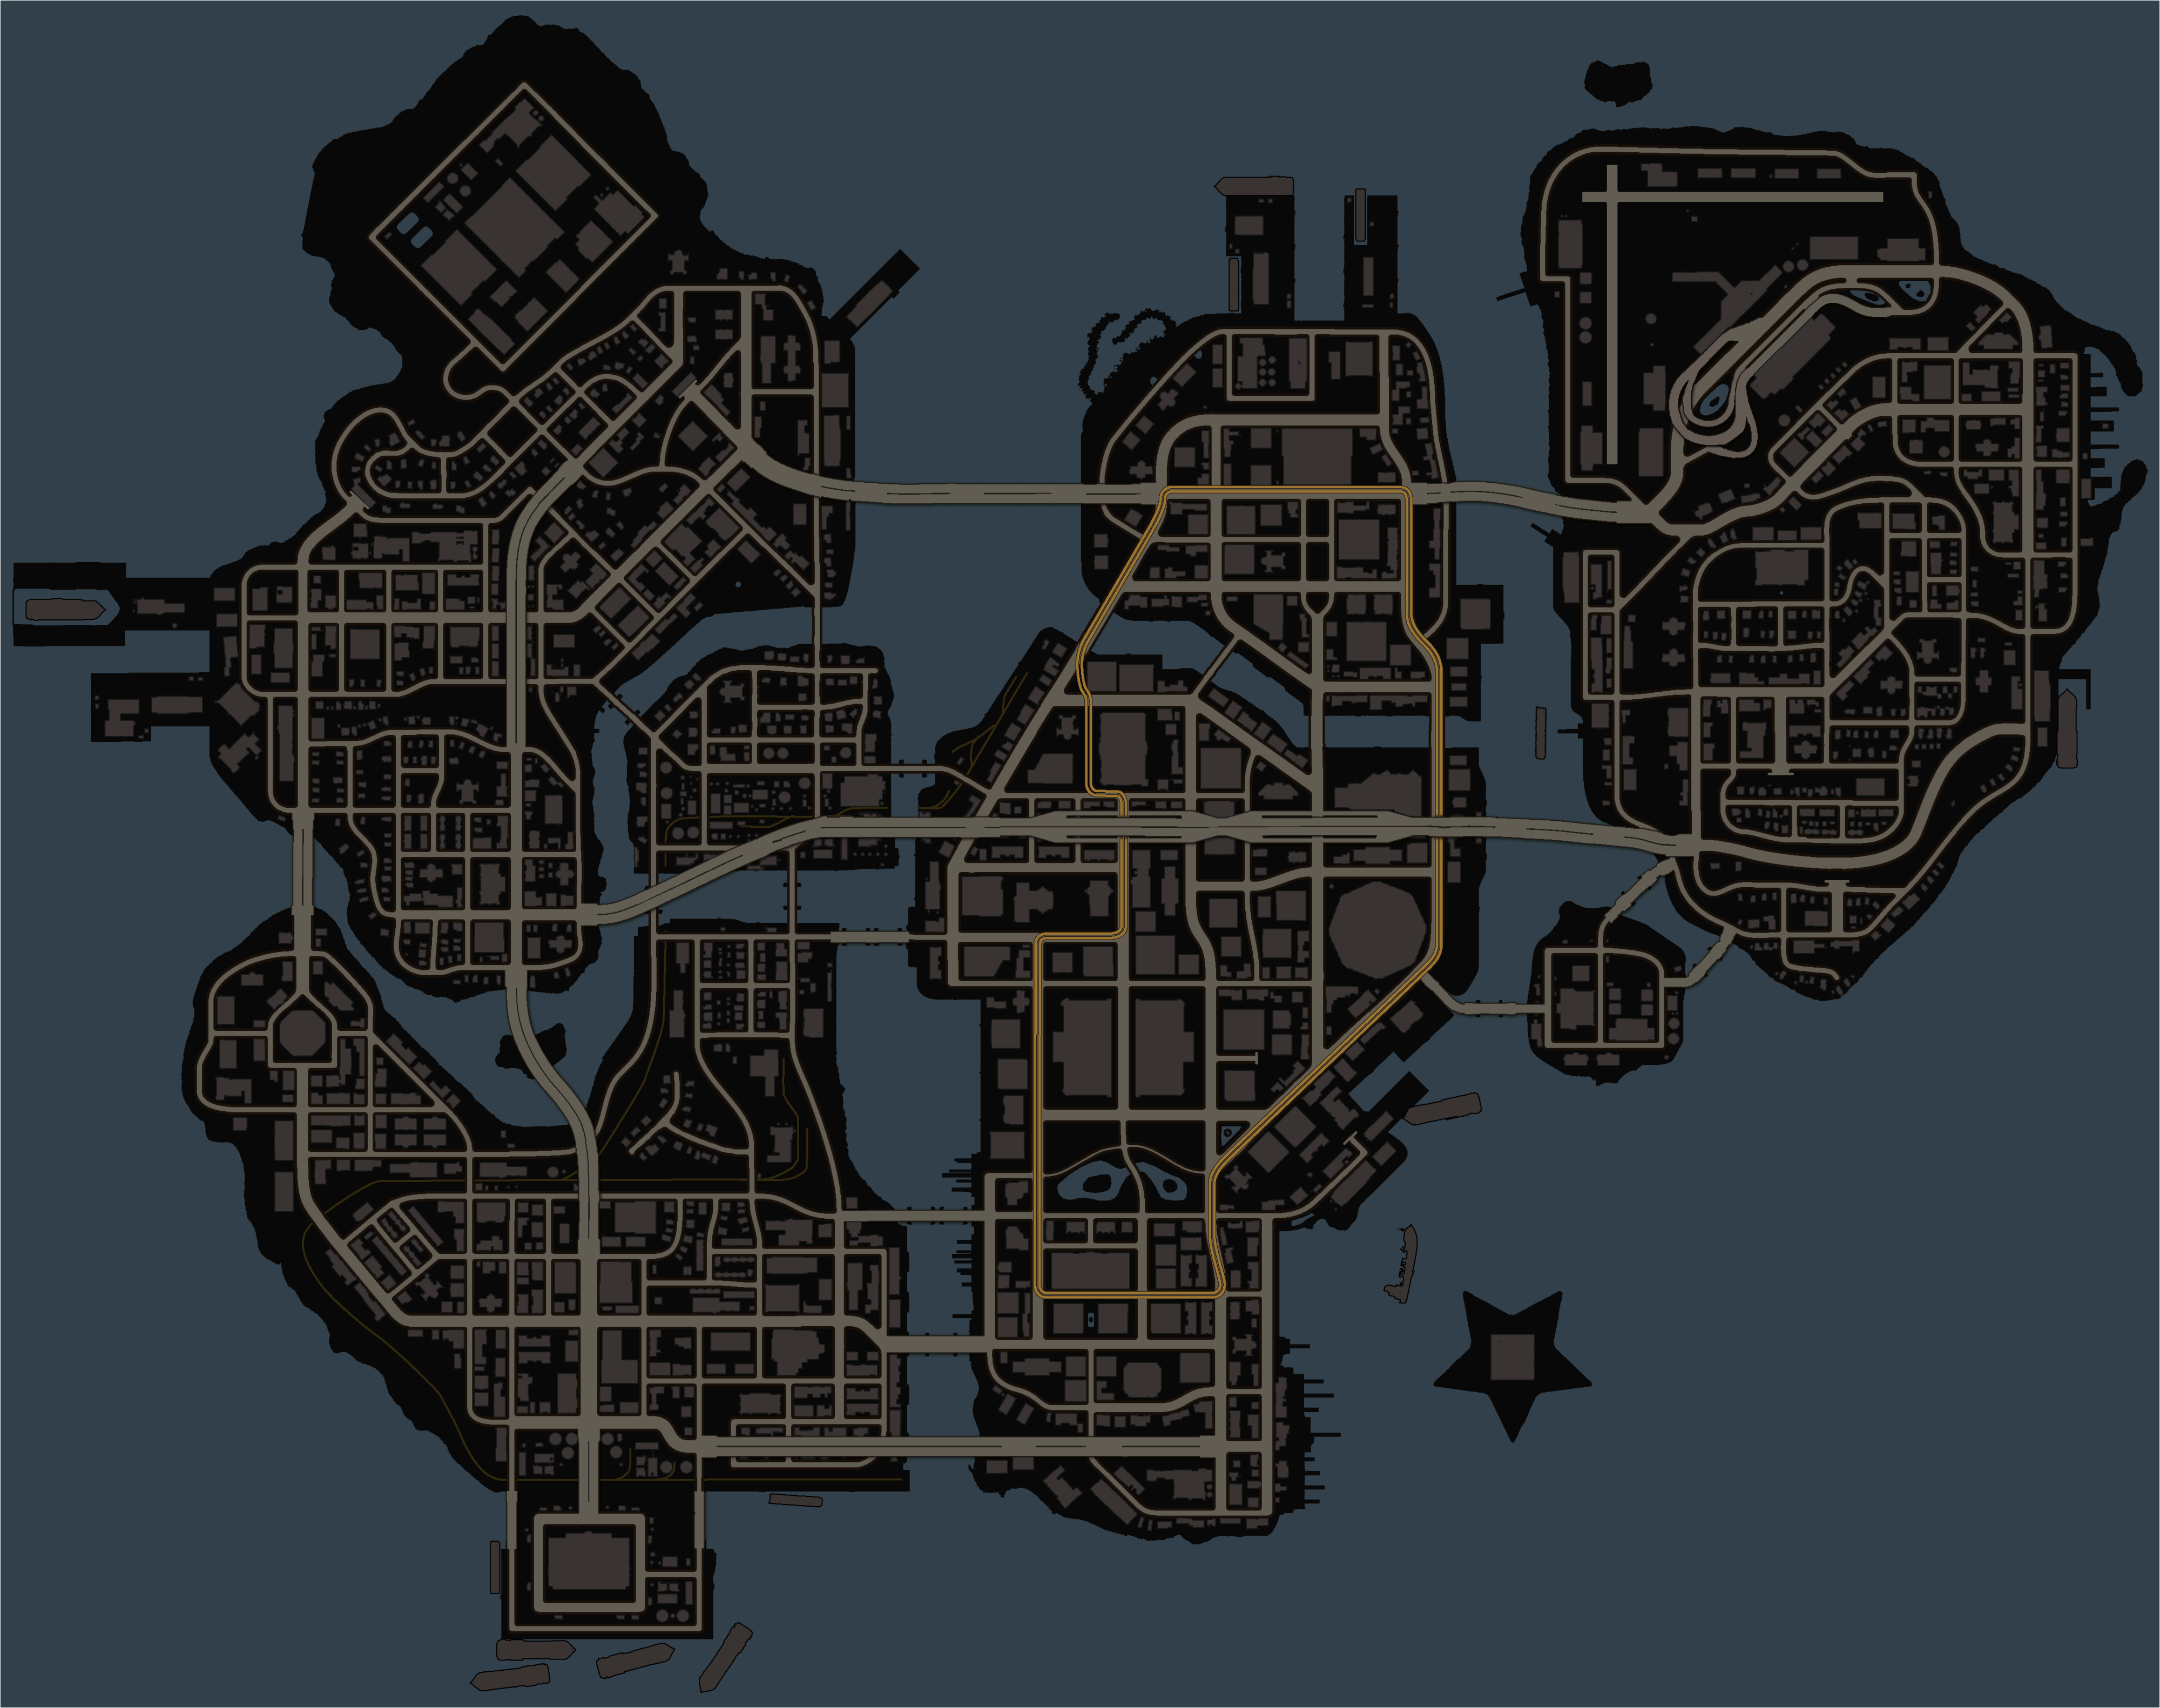 Saint Row 3 and 4 - Map of the Steelport by Unter-offizier ...